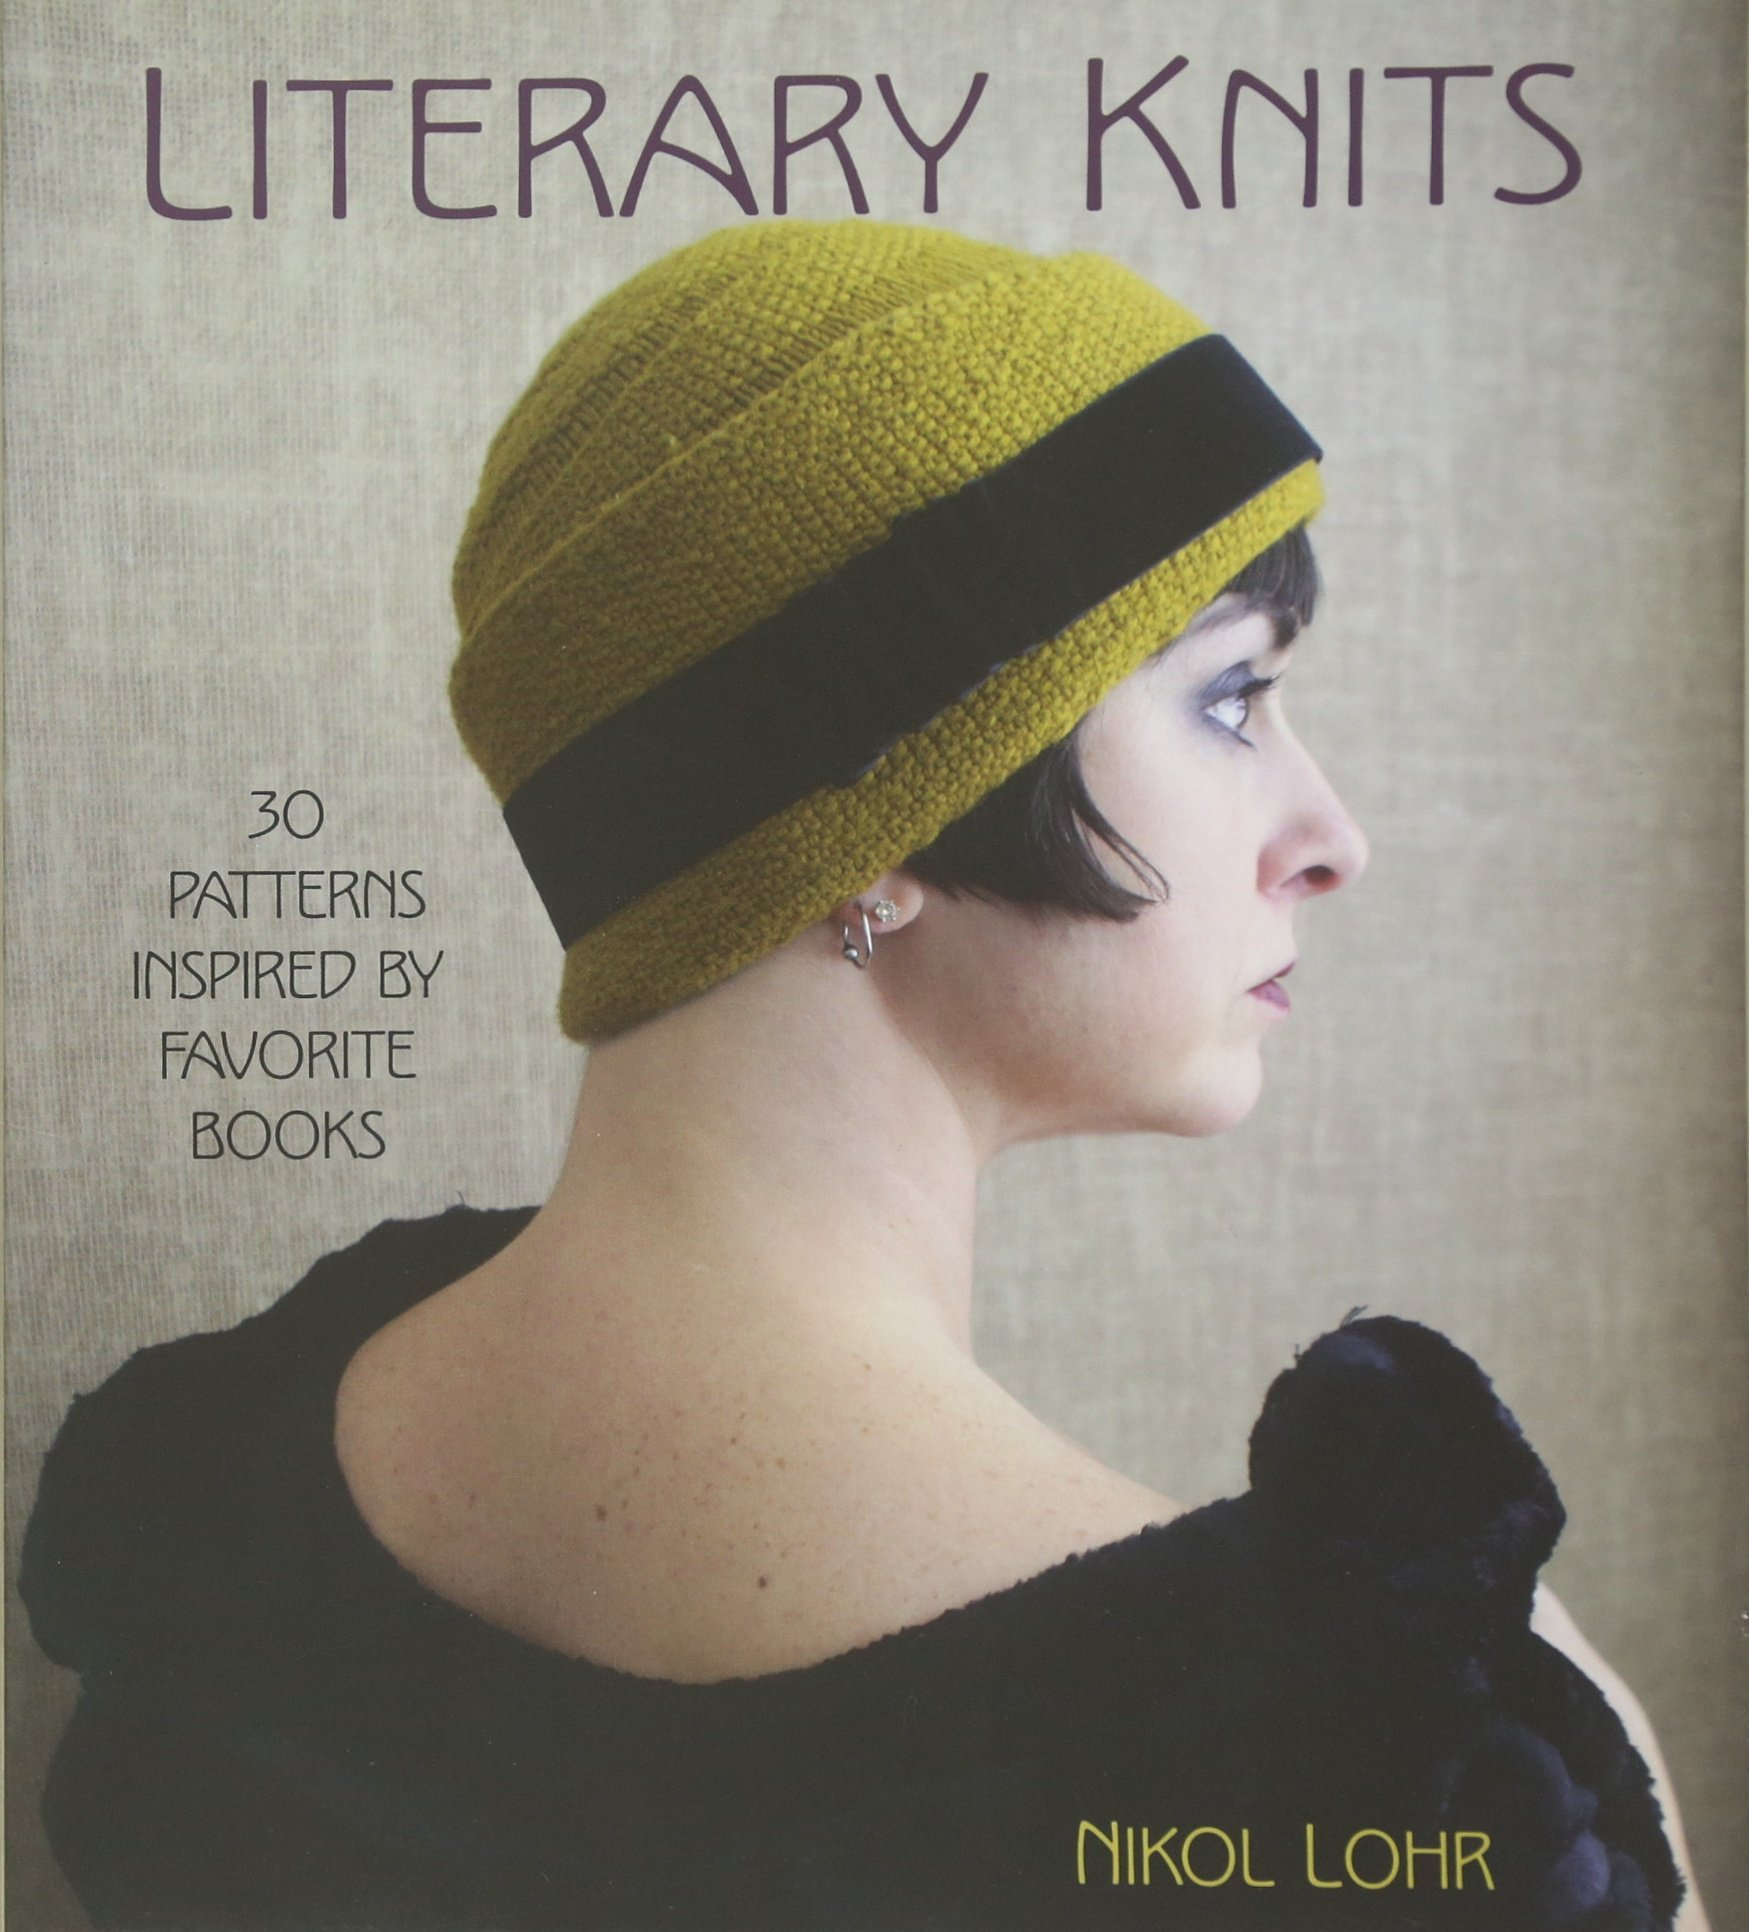 Literary Knits: 30 Patterns Inspired by Favorite Books PDF ePub book